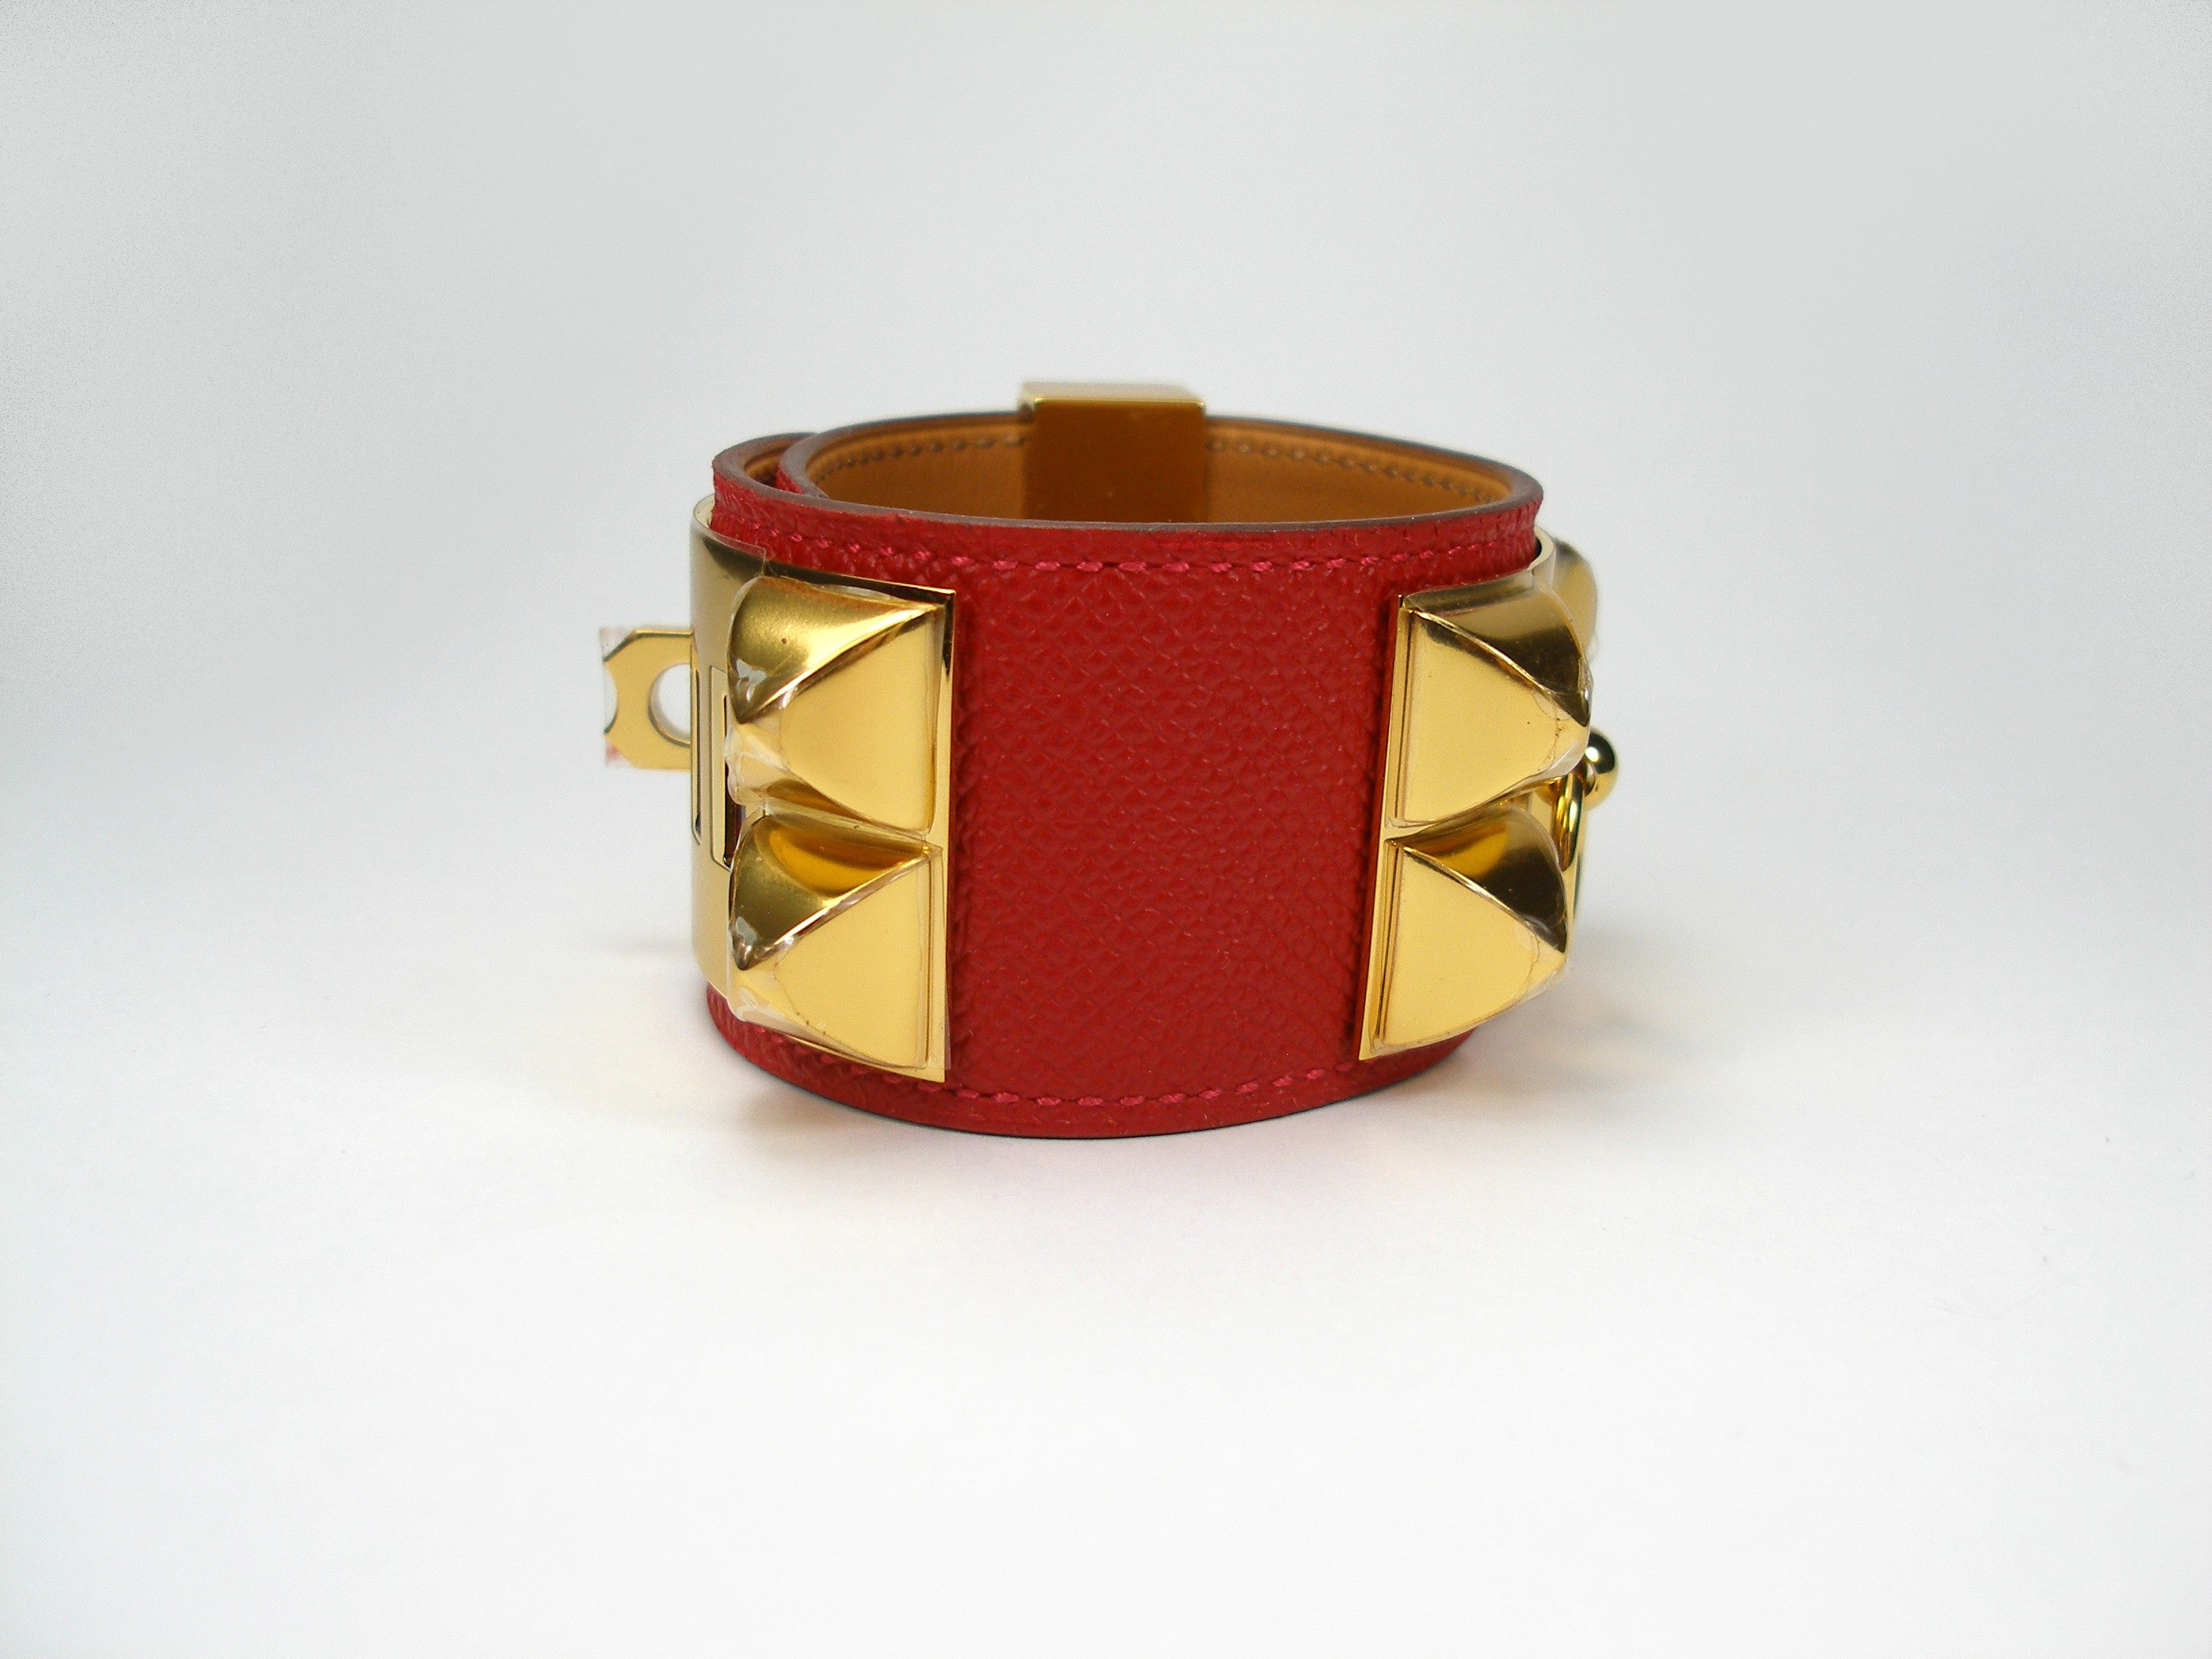 de products chien bracelets enlarged herm the bracelet s realreal wrap hermes jewelry collier